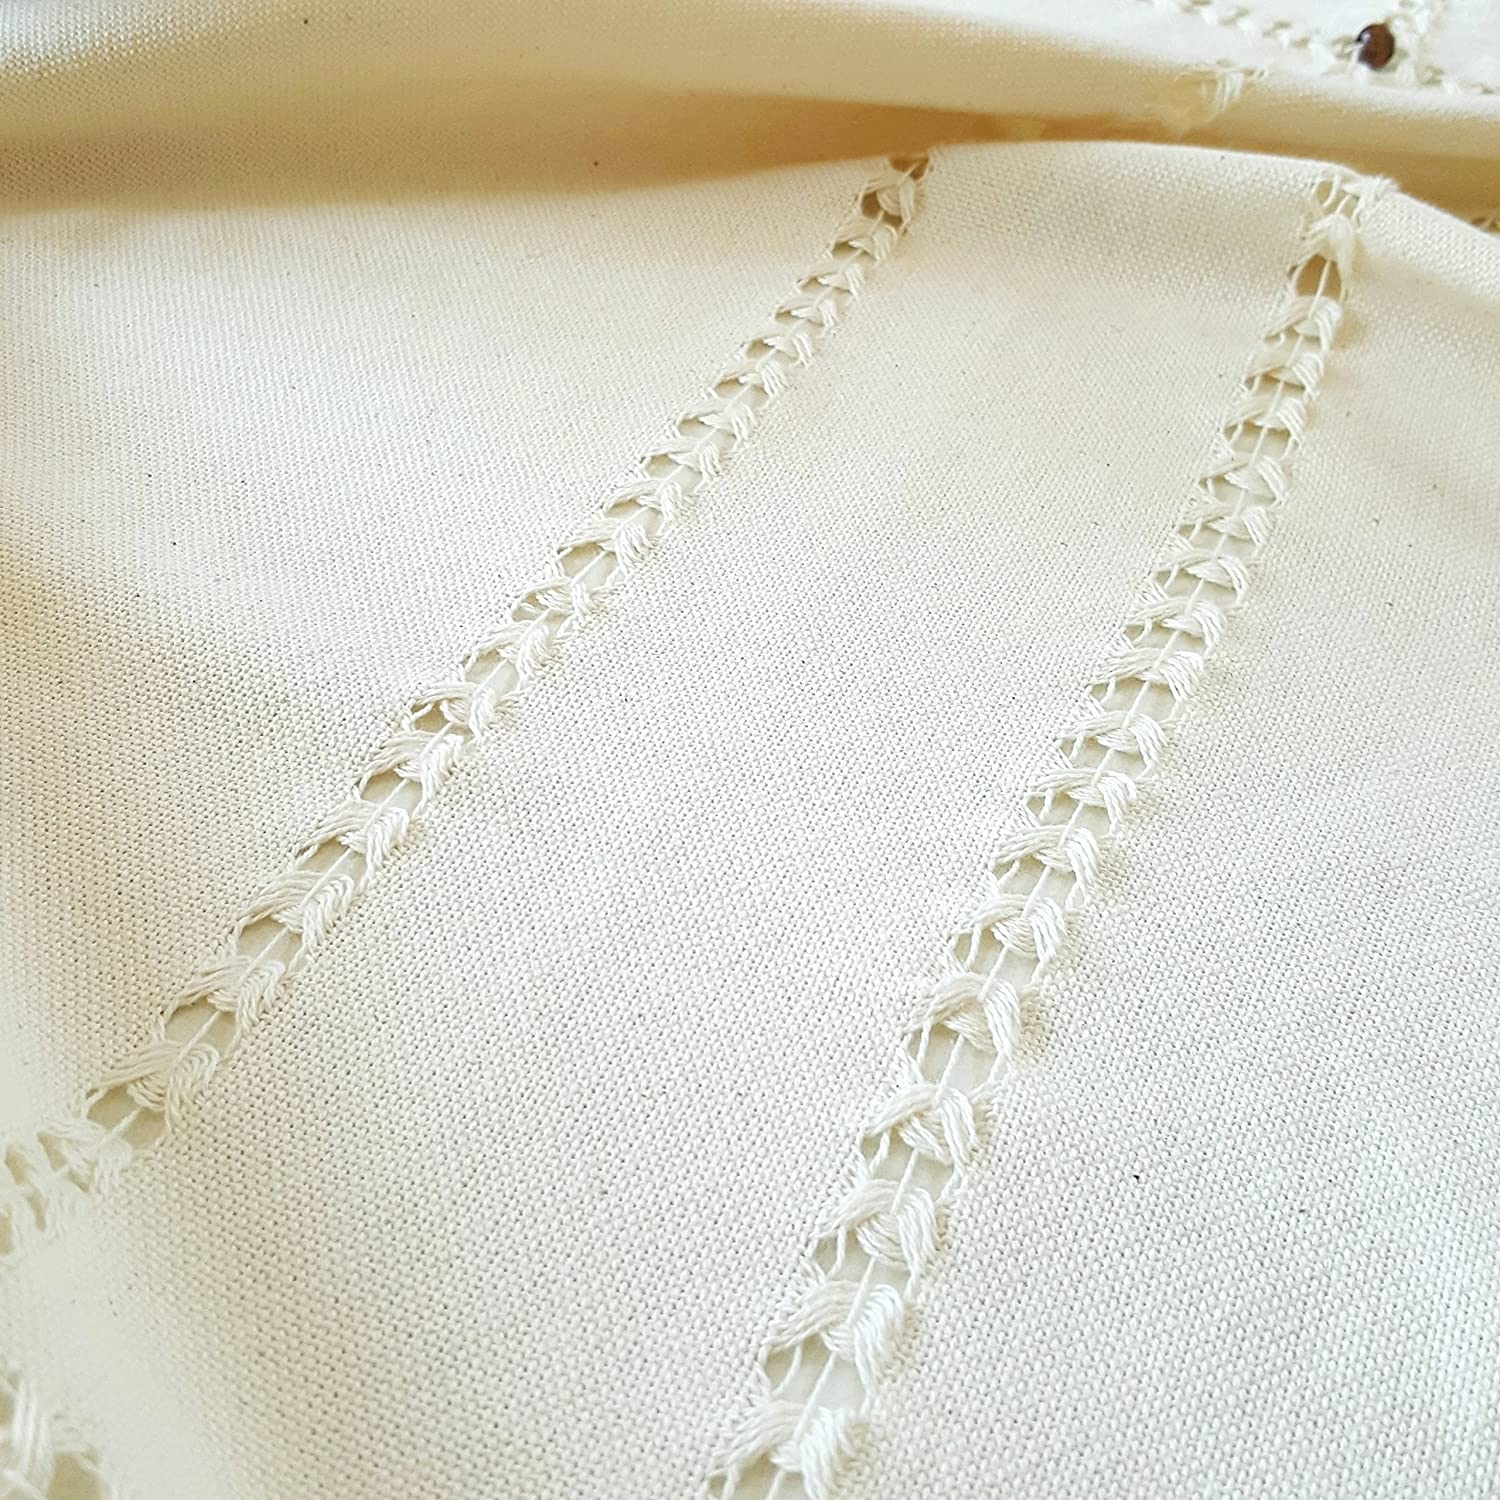 Decorated with Blue Beads and Tassels 36 x 36 Handmade 36 x 36 Secret Sea Collection 100/% Natural Cotton Color: Solid Beige Traditional Small Tablecloth,